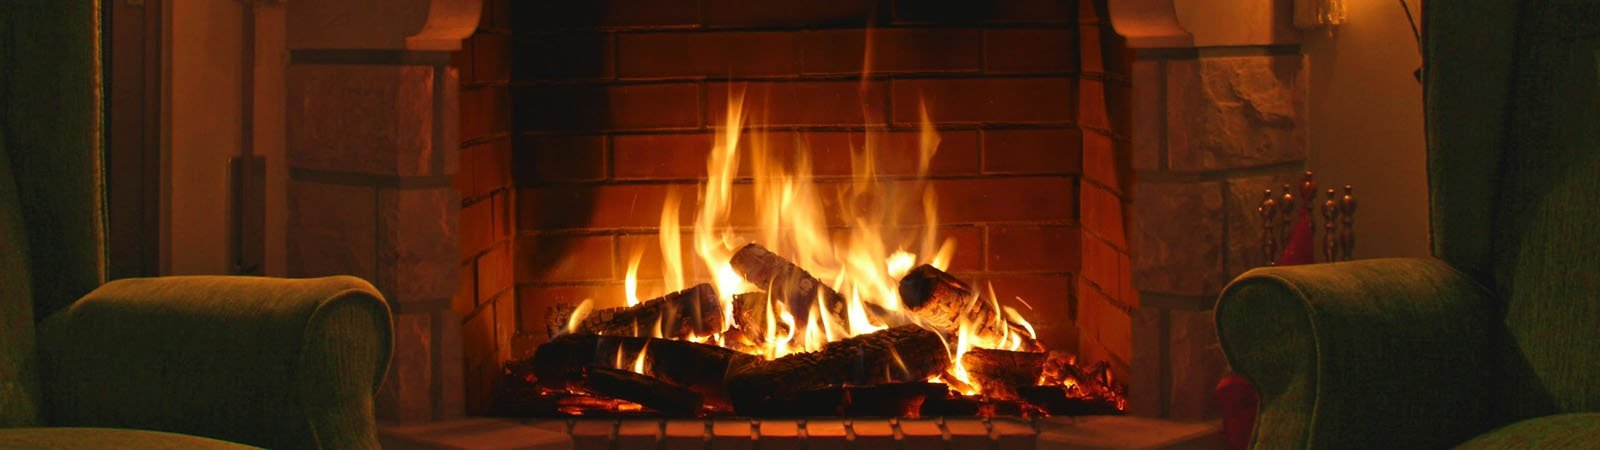 PSA: The Fireplace Delusion